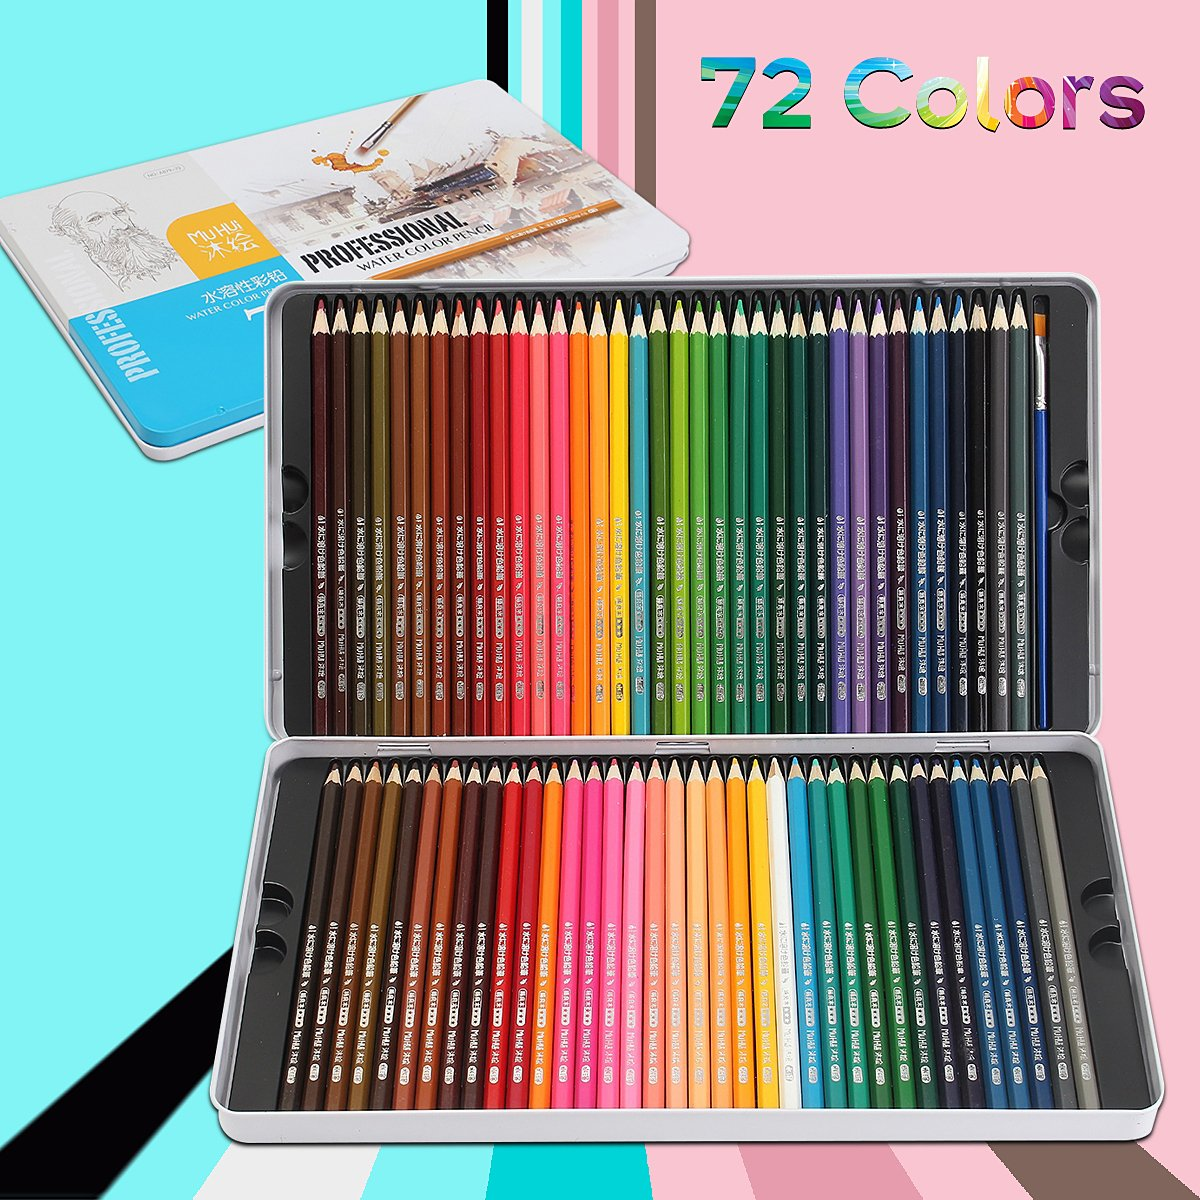 ARTISTORE Set di 72 Matite Colorate Professionali matite colorate per fumetti, artisti, illustrazioni, interior designer, studenti, arte e adulti amanti del colorare, ottima idea regalo per Natale